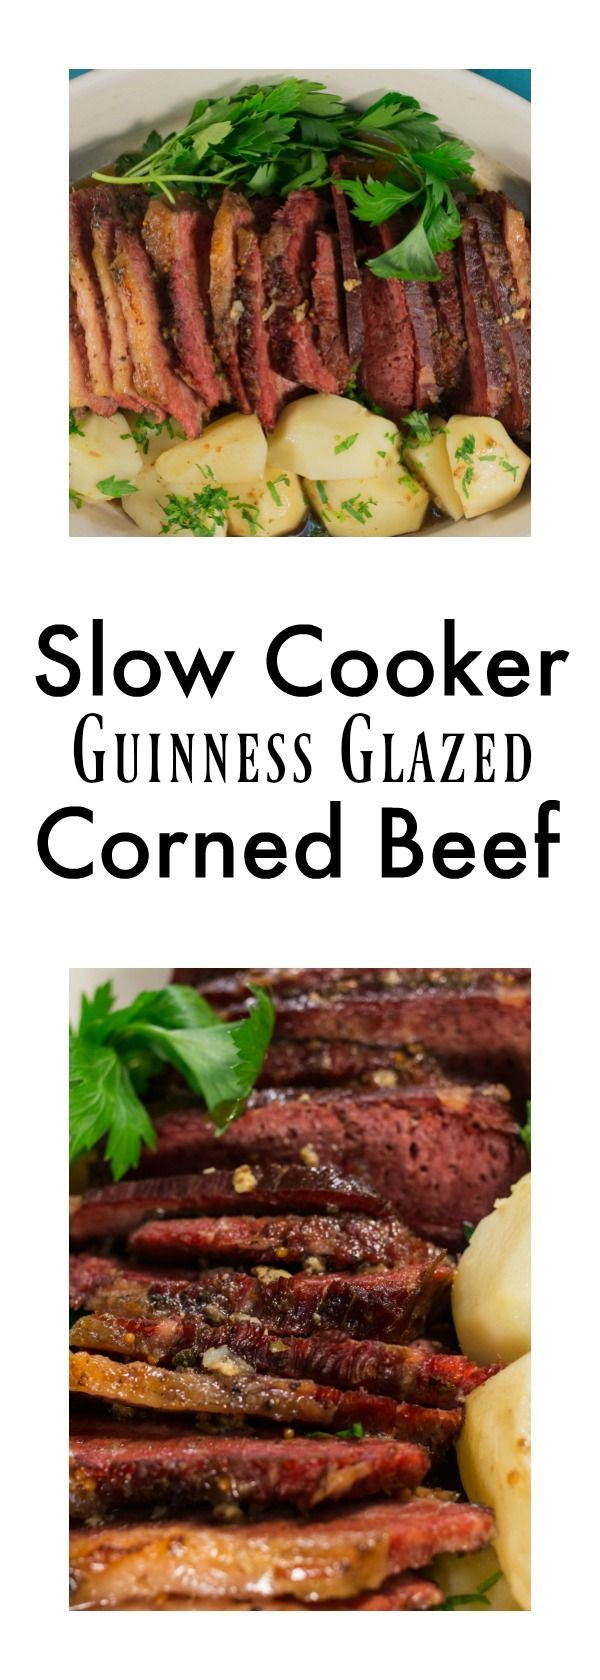 Slow Cooker Guinness Glazed Corned Beef–St Patrick's Day is right around the corner. Make an easy corned beef in your slow cooker to celebrate!